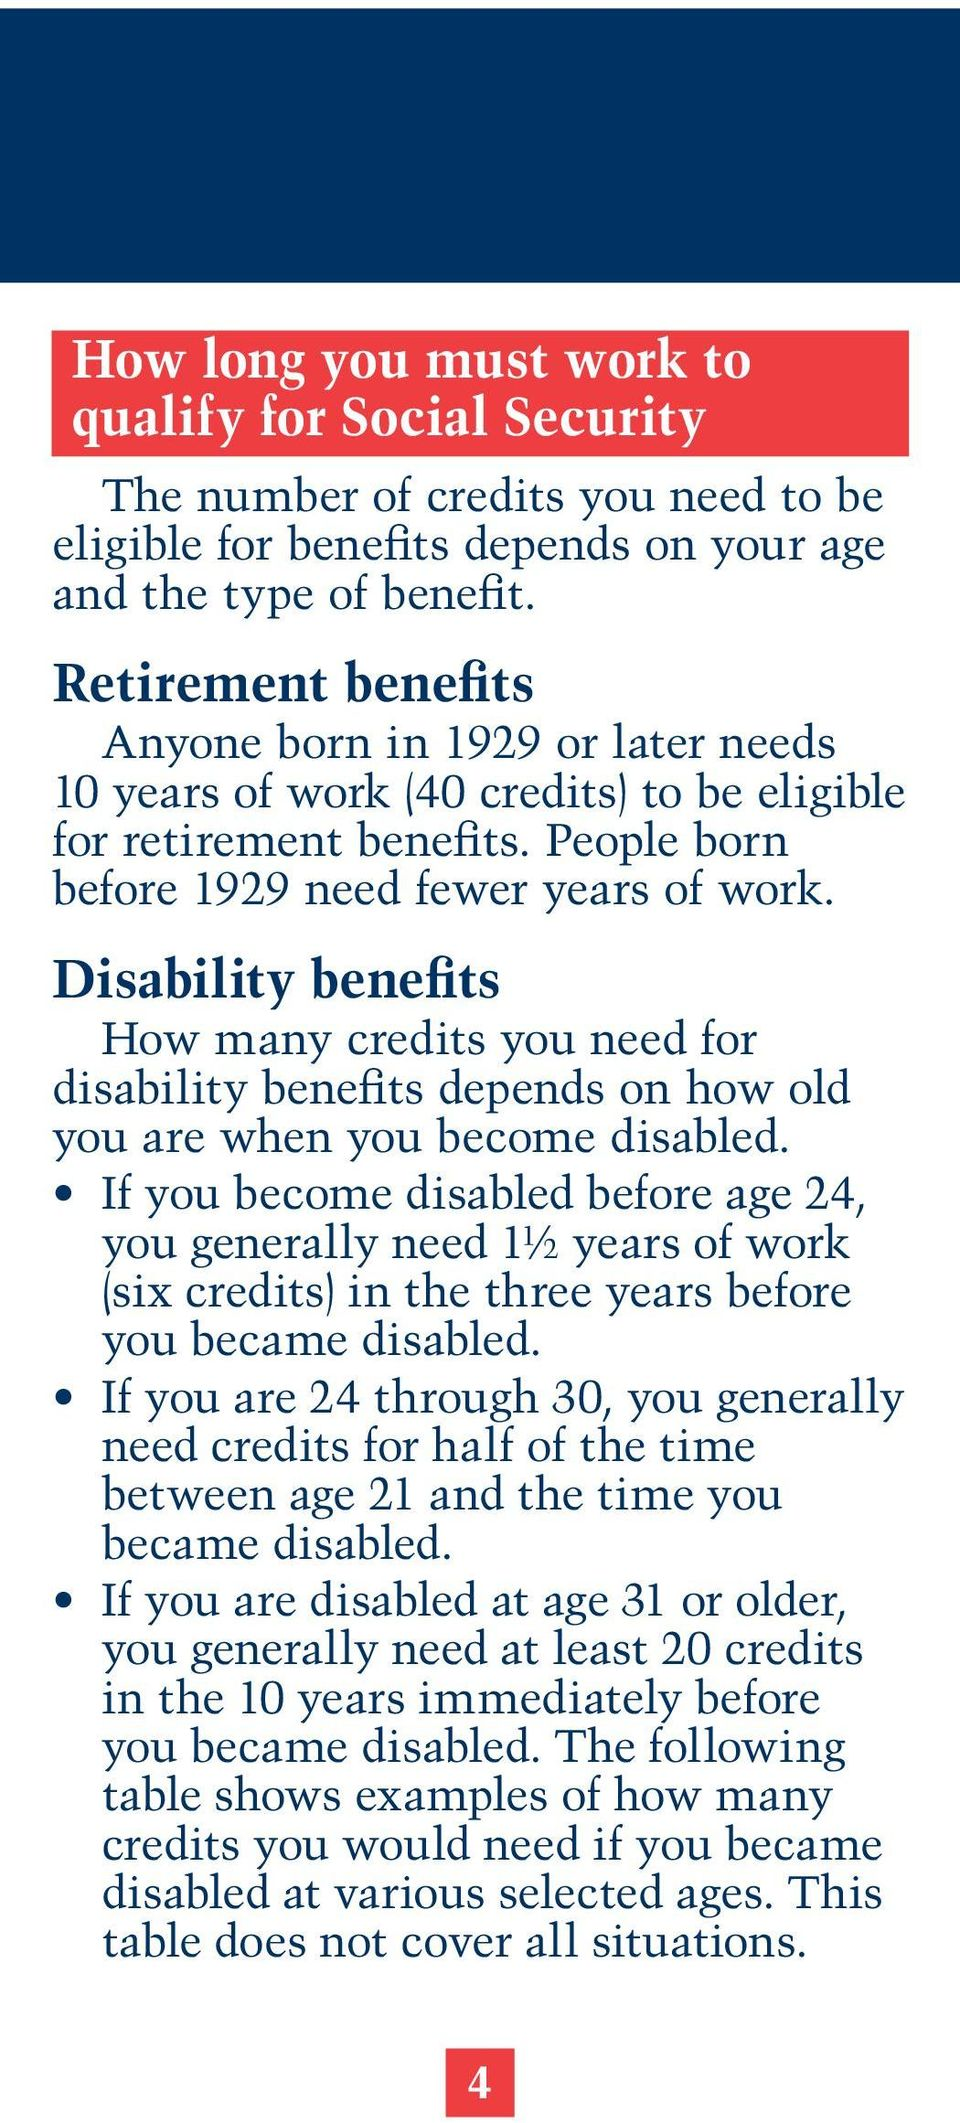 Disability benefits How many credits you need for disability benefits depends on how old you are when you become disabled.